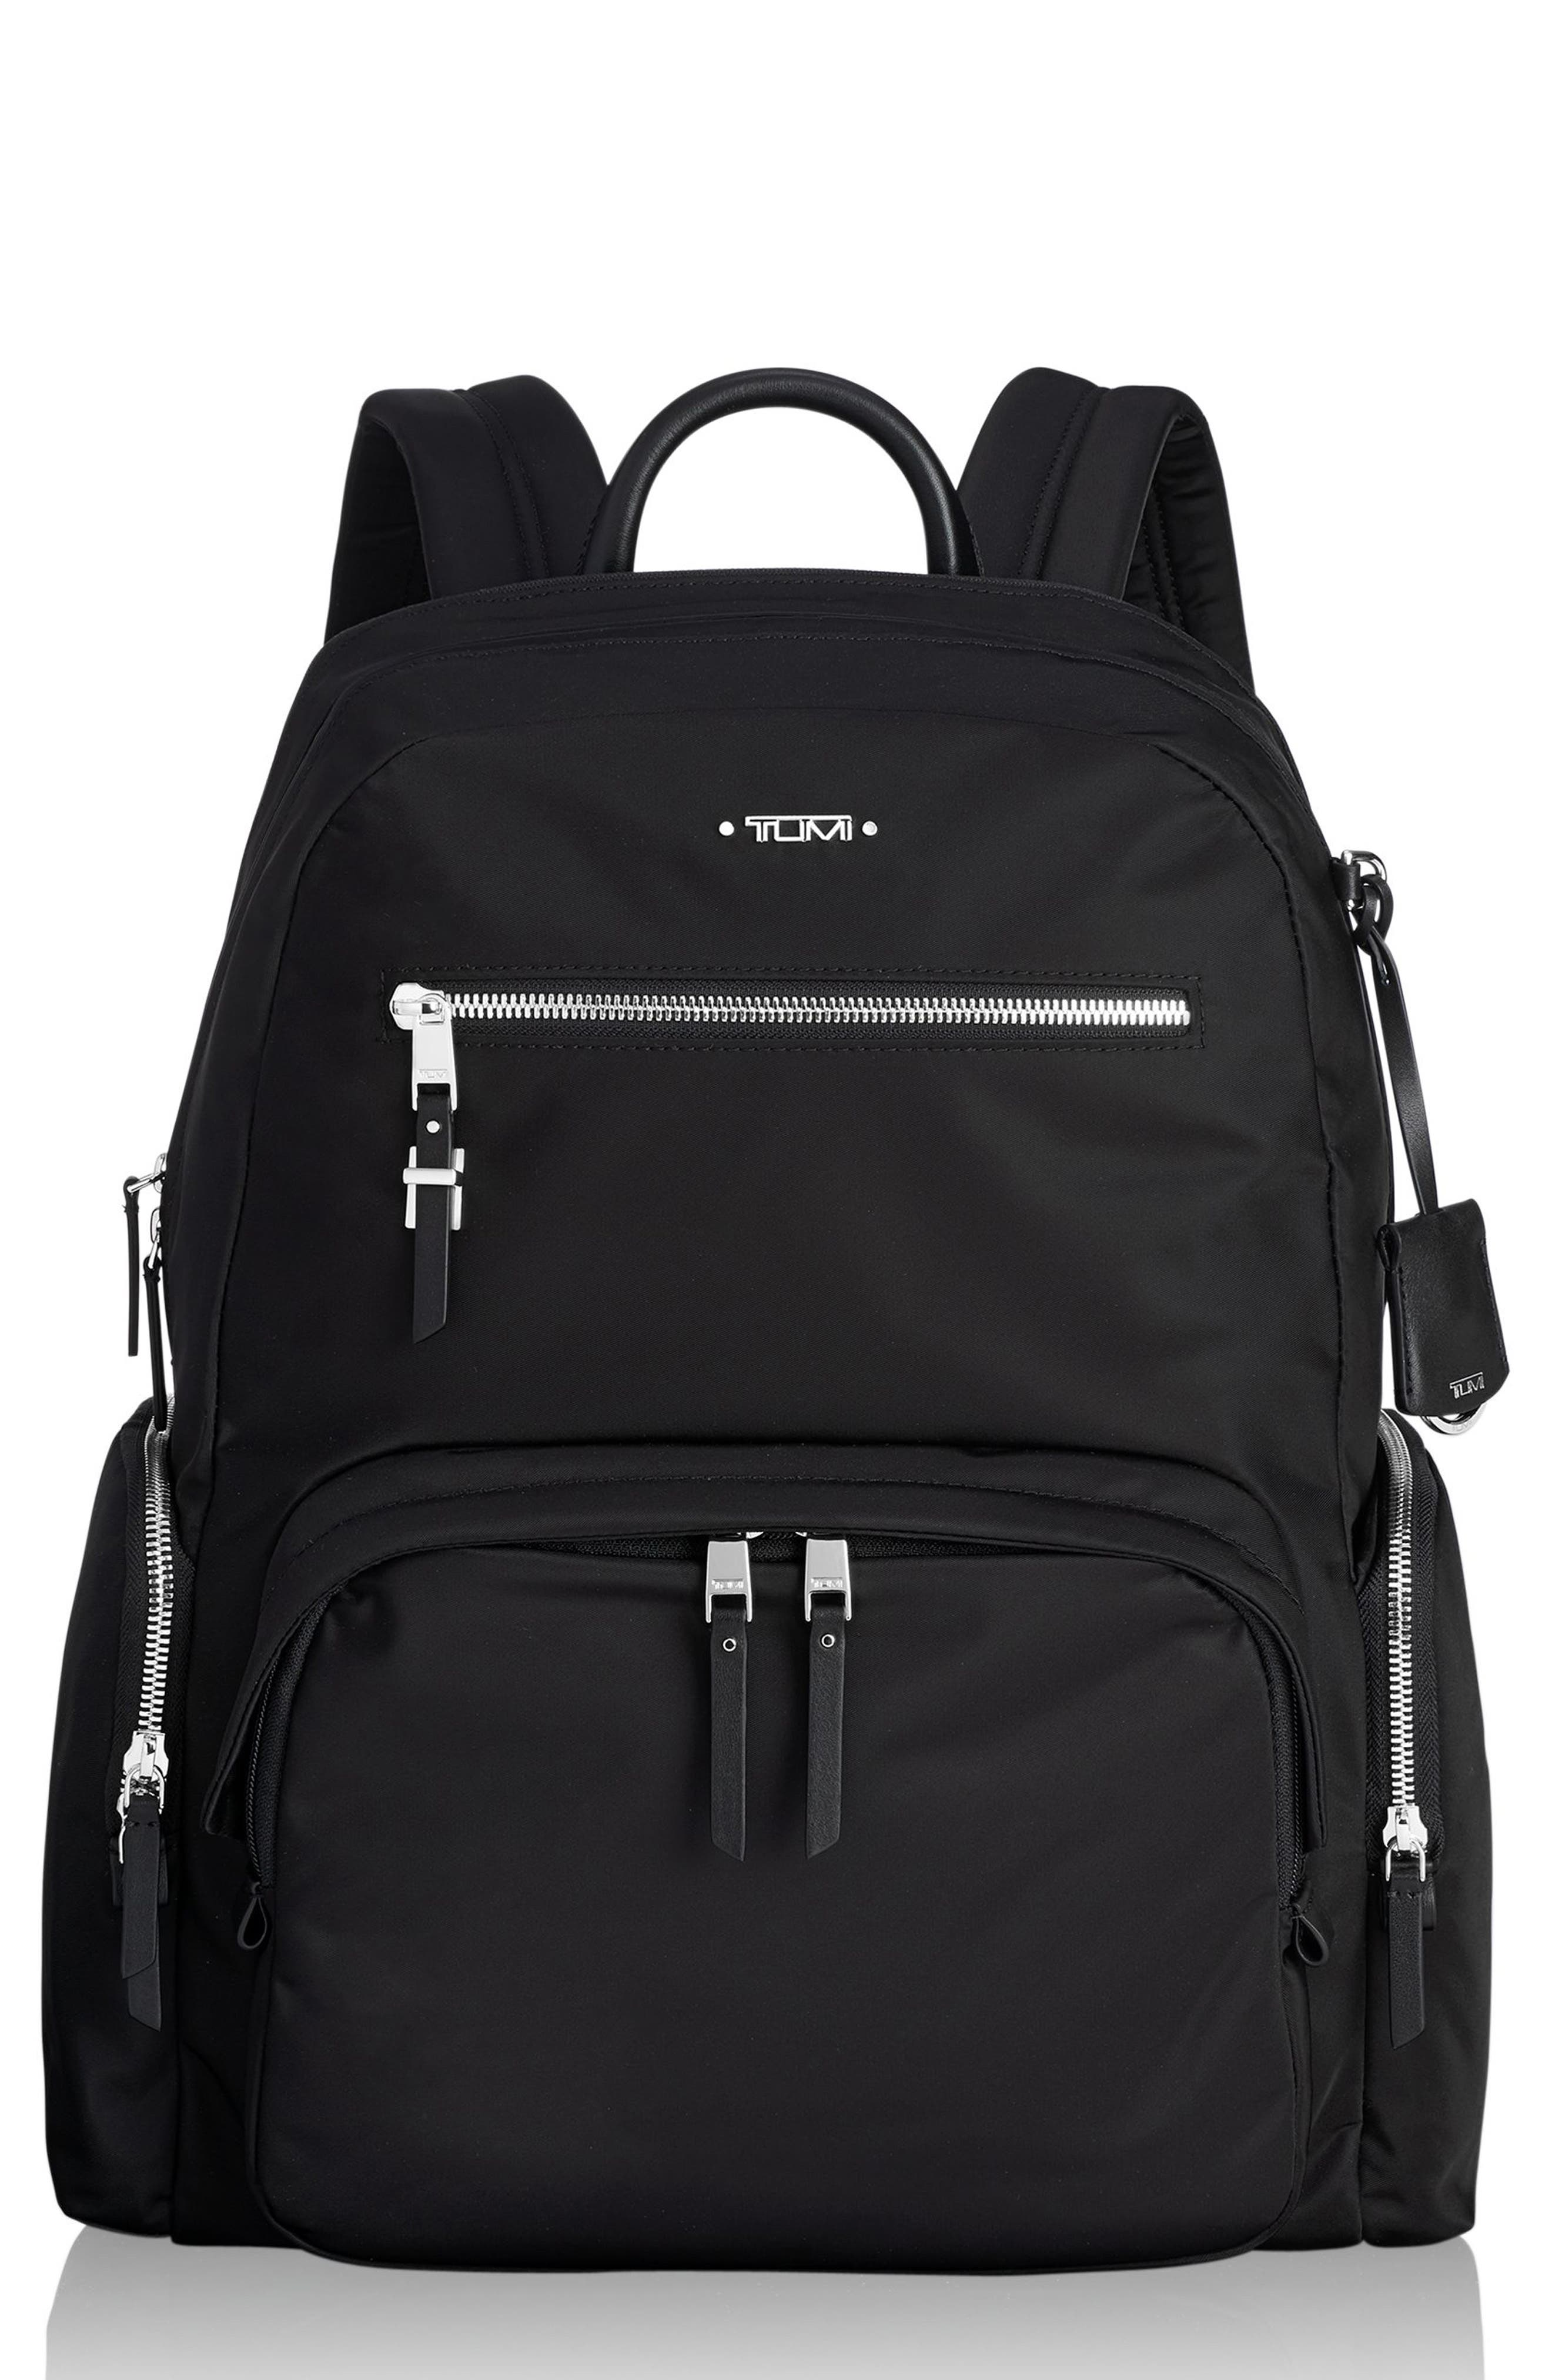 TUMI Voyager Carson Nylon Backpack, Main, color, BLACK/ SILVER